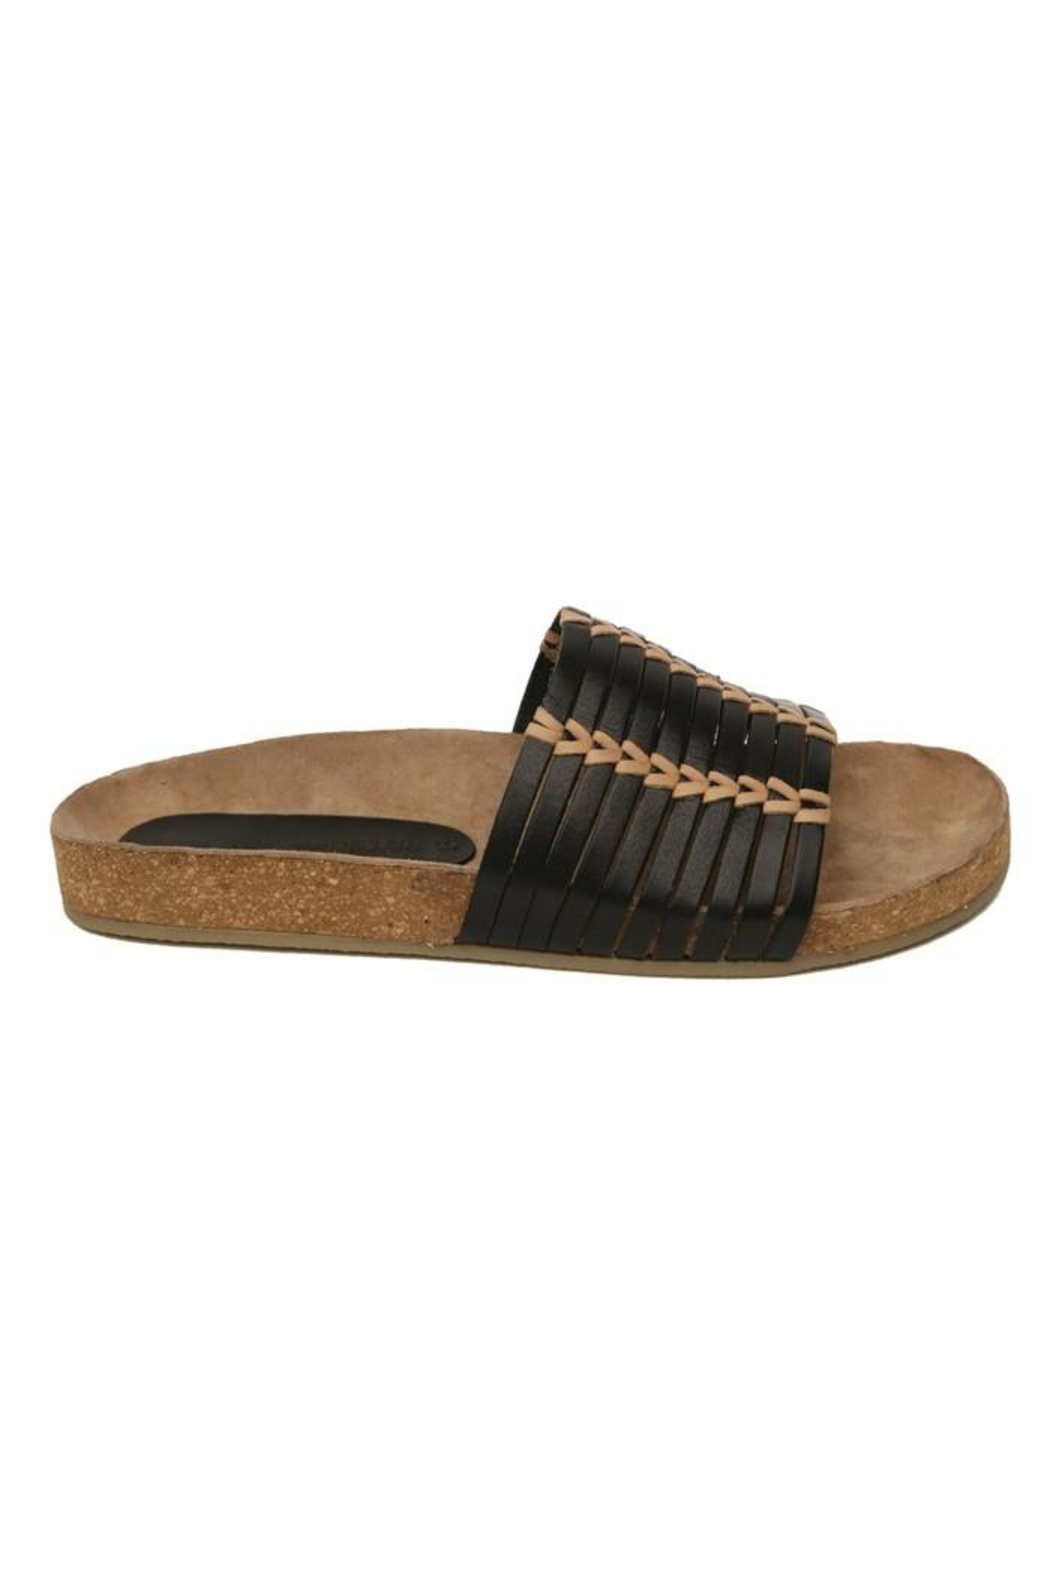 1608e91196bc Band Of Gypsies Aztec Slide Sandal from Hudson Valley by Bfree ...